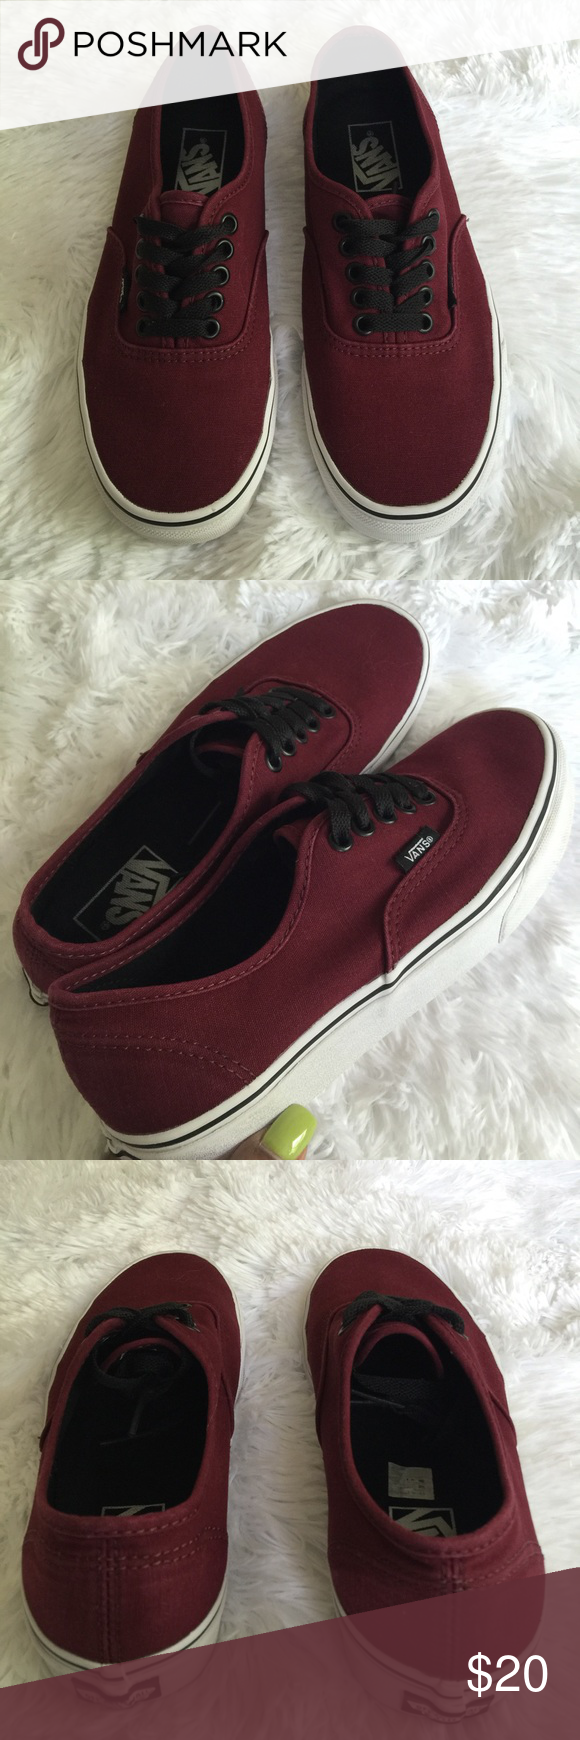 """Vans Authentic Kids Sneakers Excellent Condition / Only worn a couple of times and looks brand new / Canvas Upper & a Vans' Classic """"Off The Wall"""" Sole / Burgundy Color Vans Shoes Sneakers"""